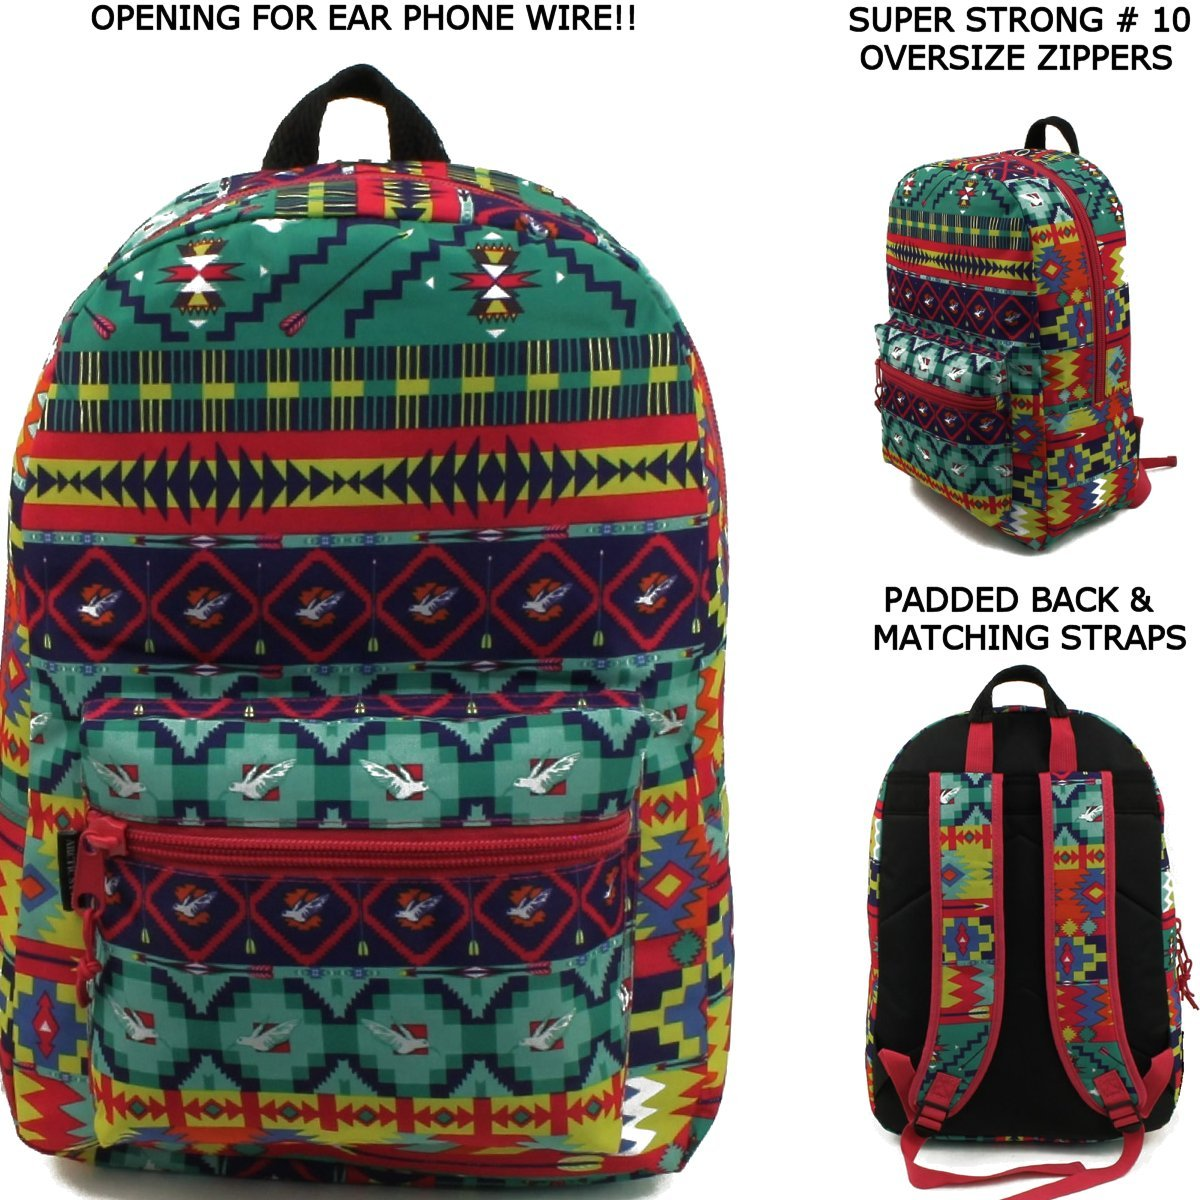 17'' Wholesale Padded Fashion Backpack - Case of 24 by Arctic Star (Image #2)